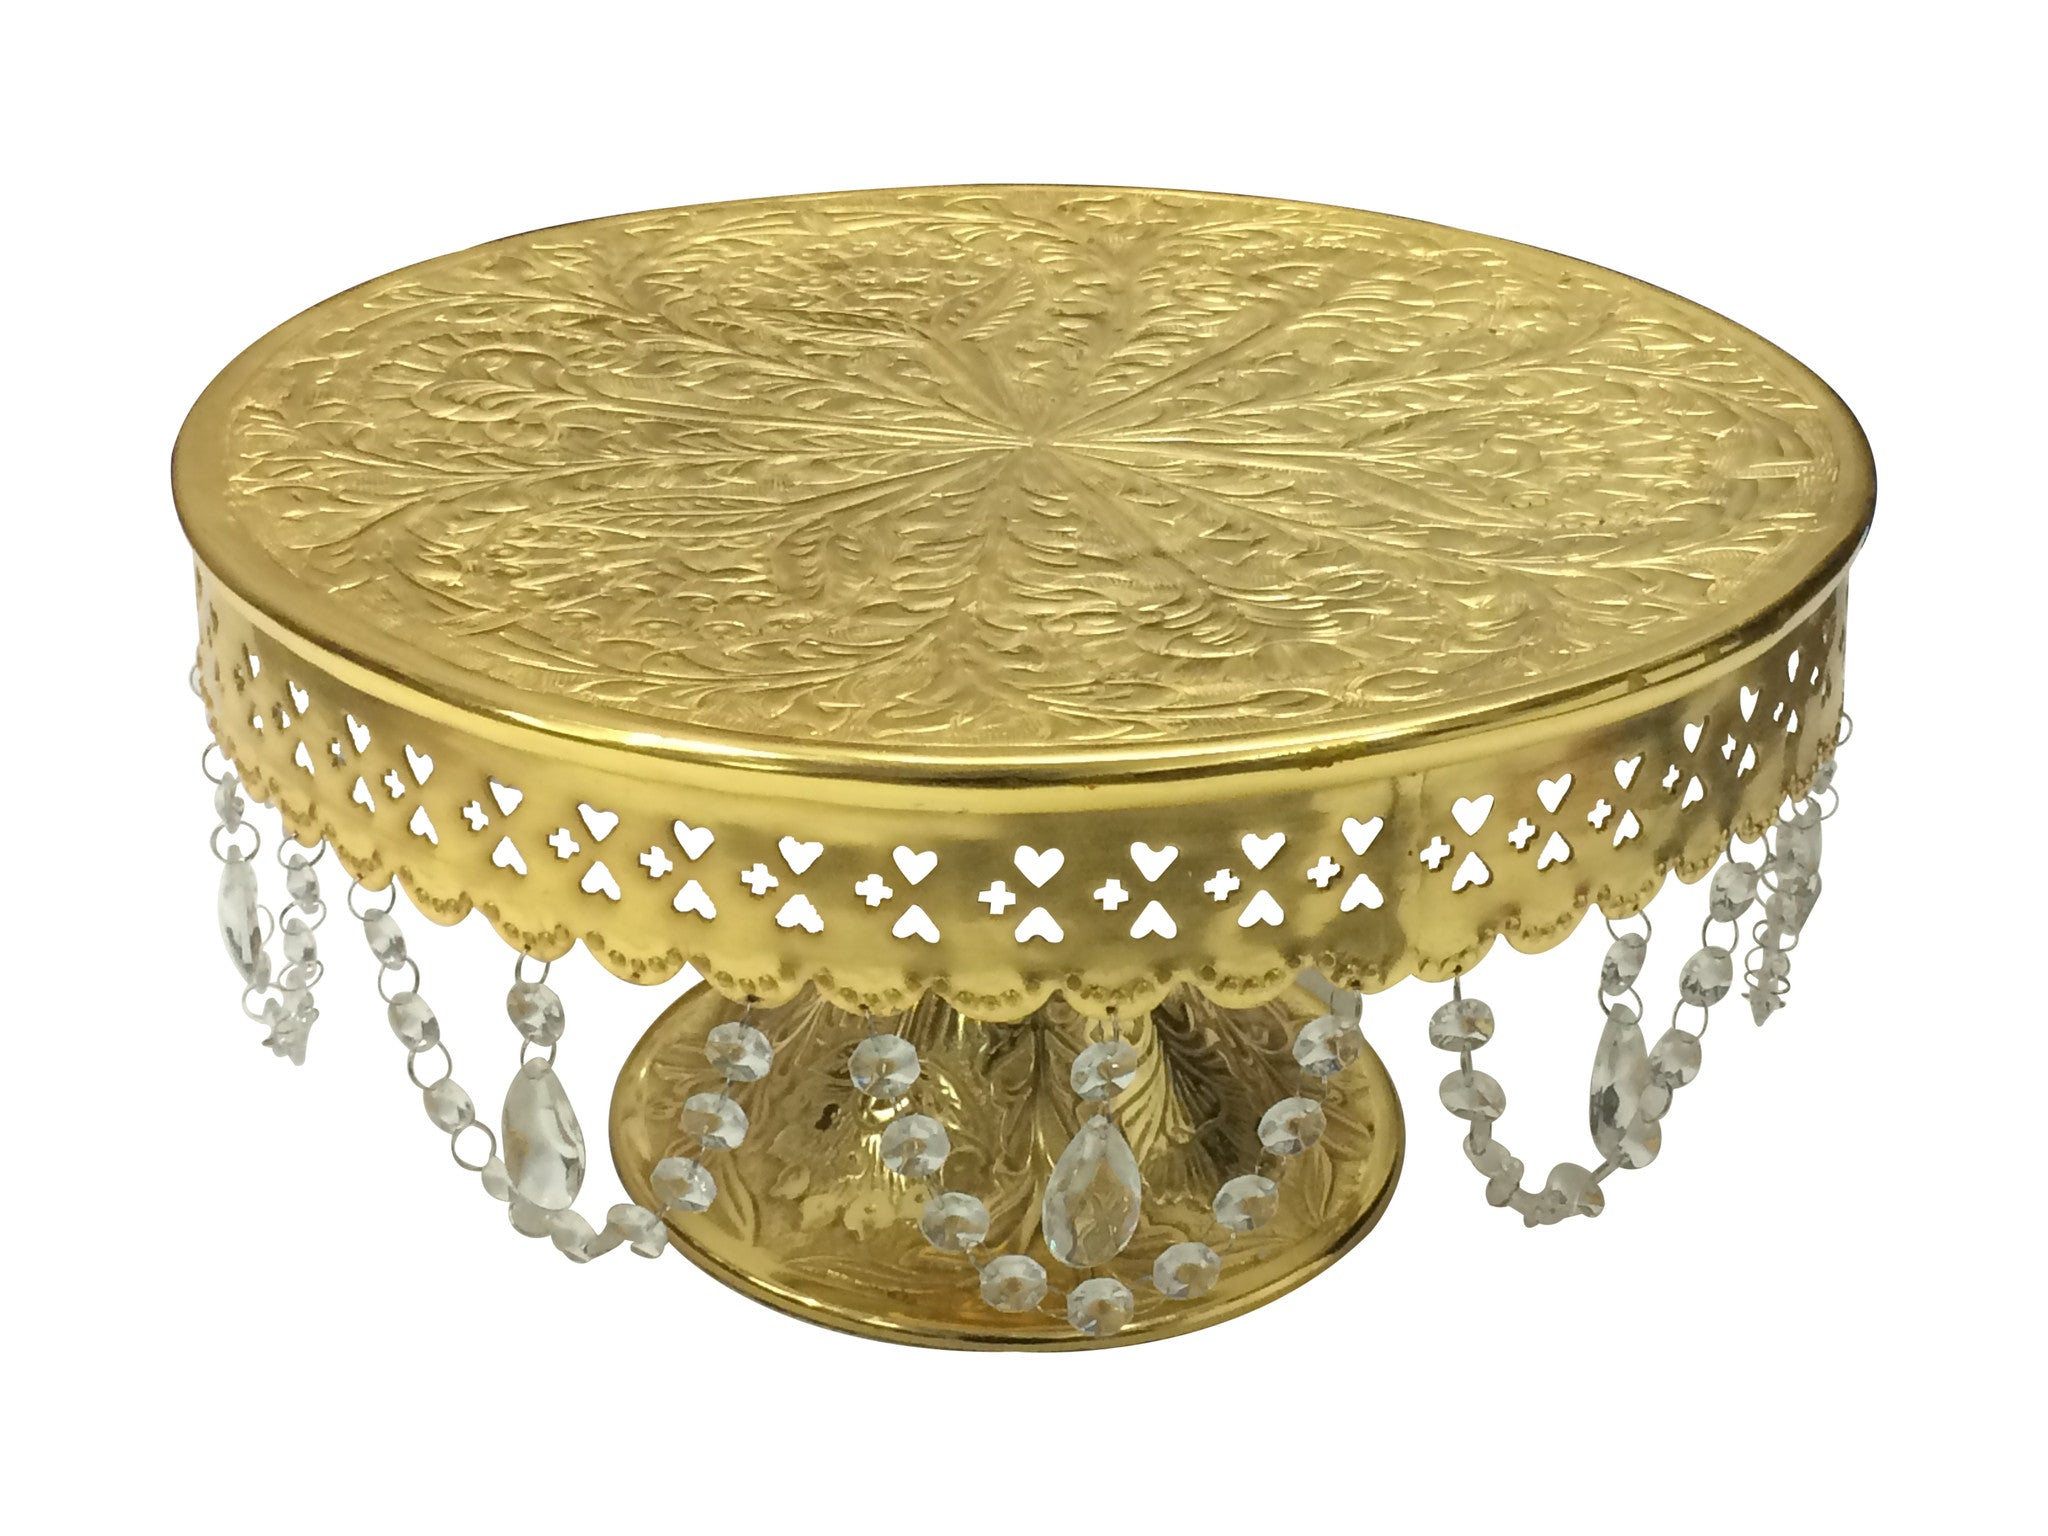 GiftBay CSG84418 Wedding Cake Stand Round Pedestal Gold finish 18\